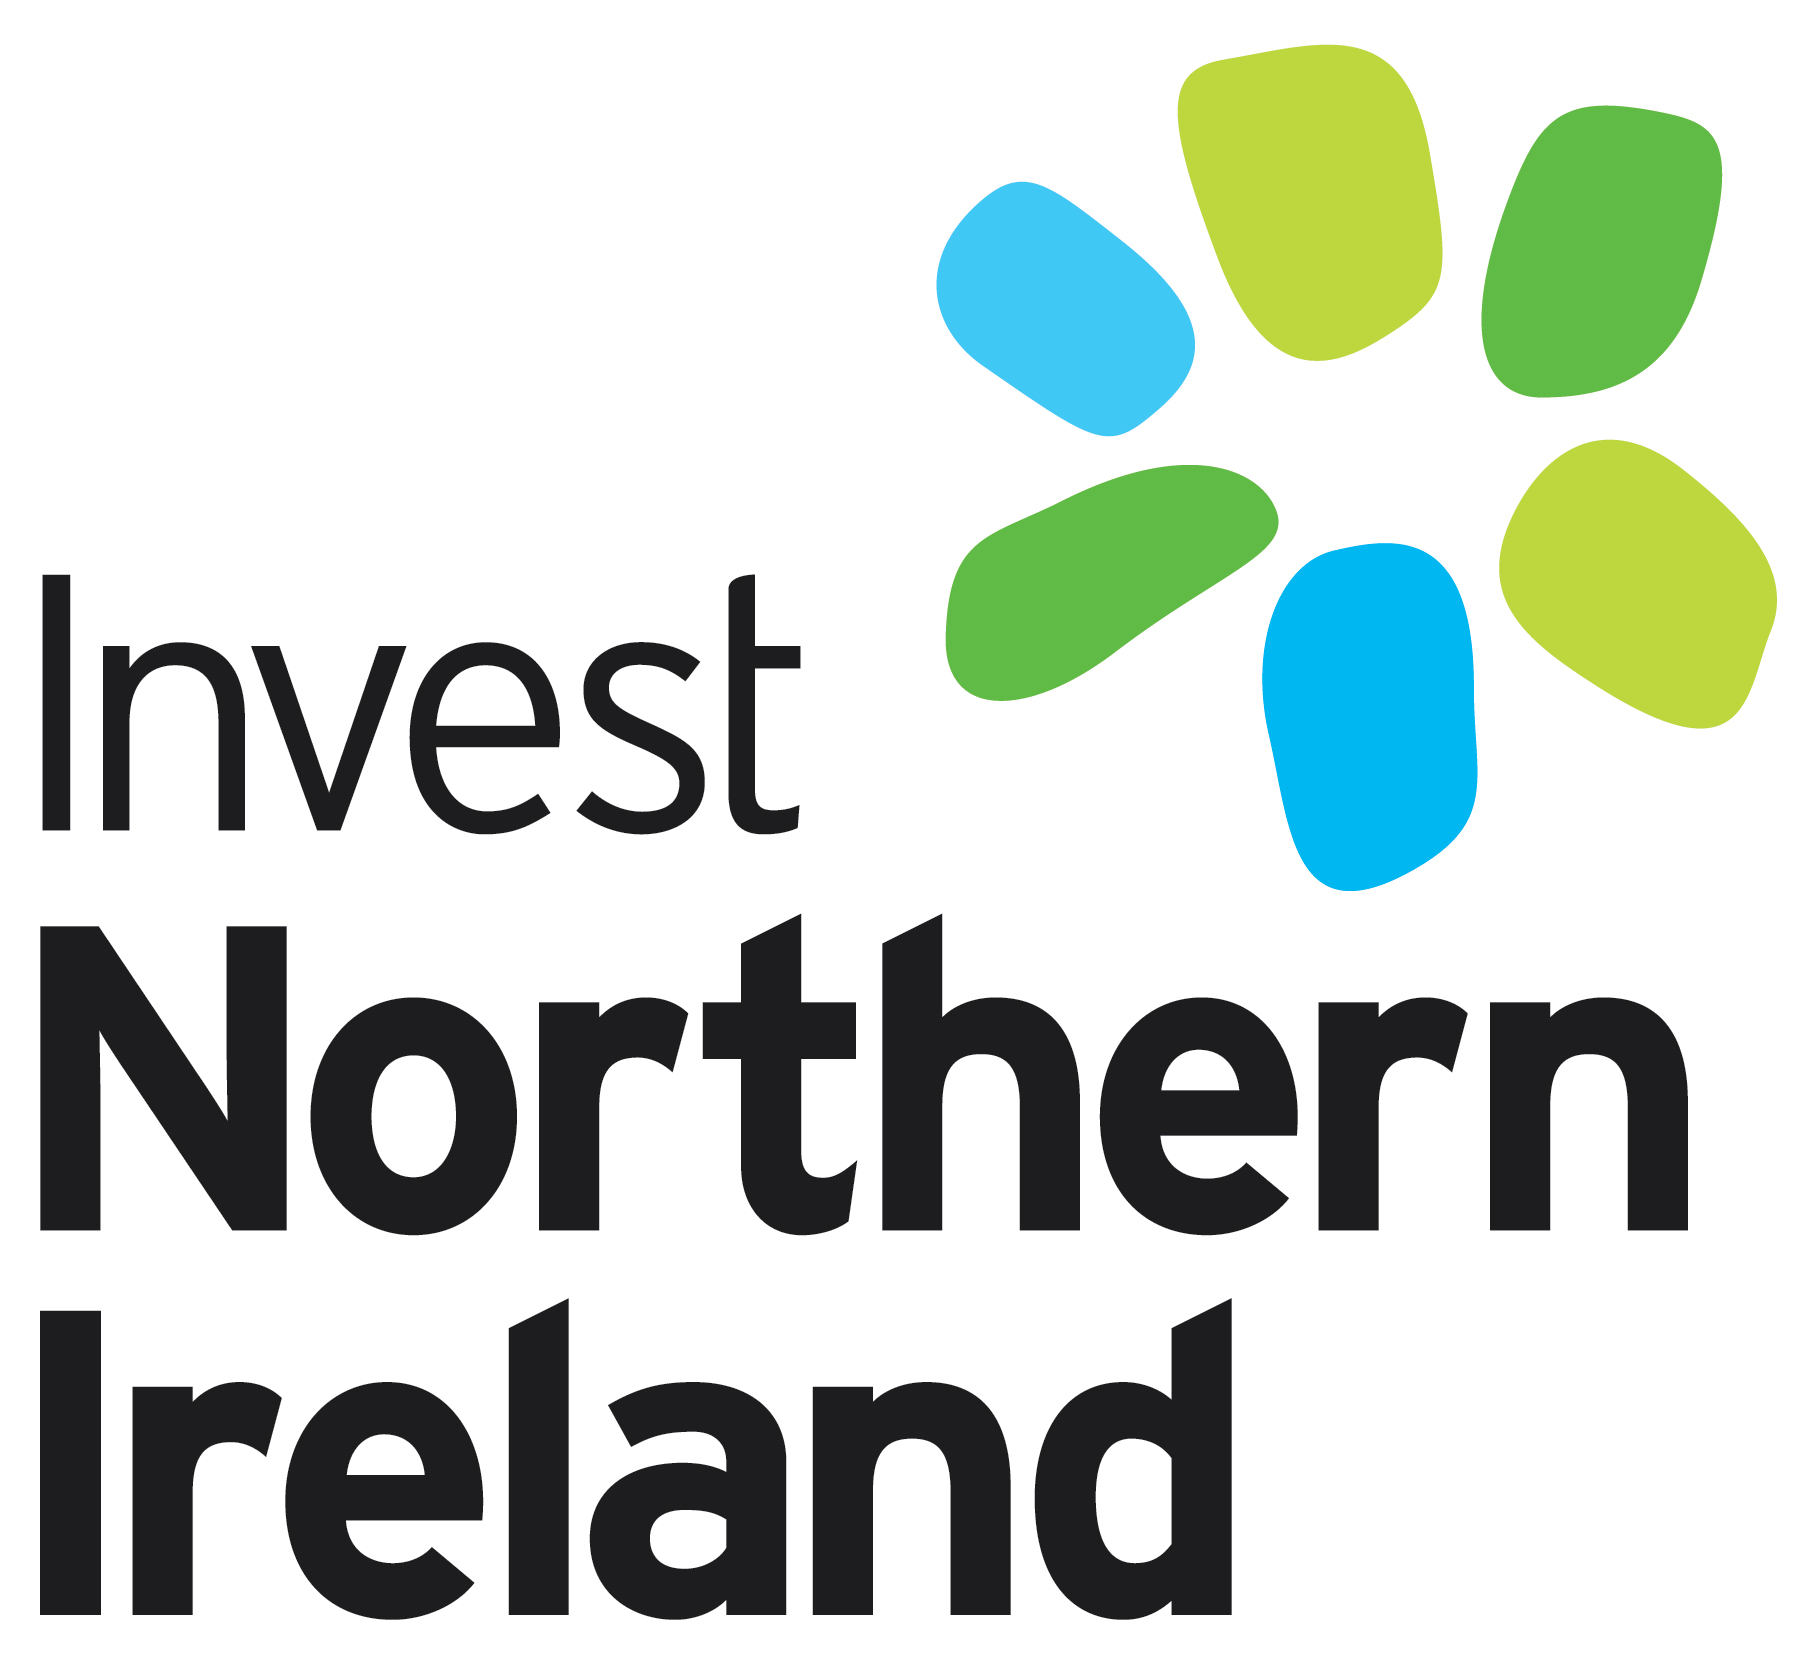 invest-northern-ireland